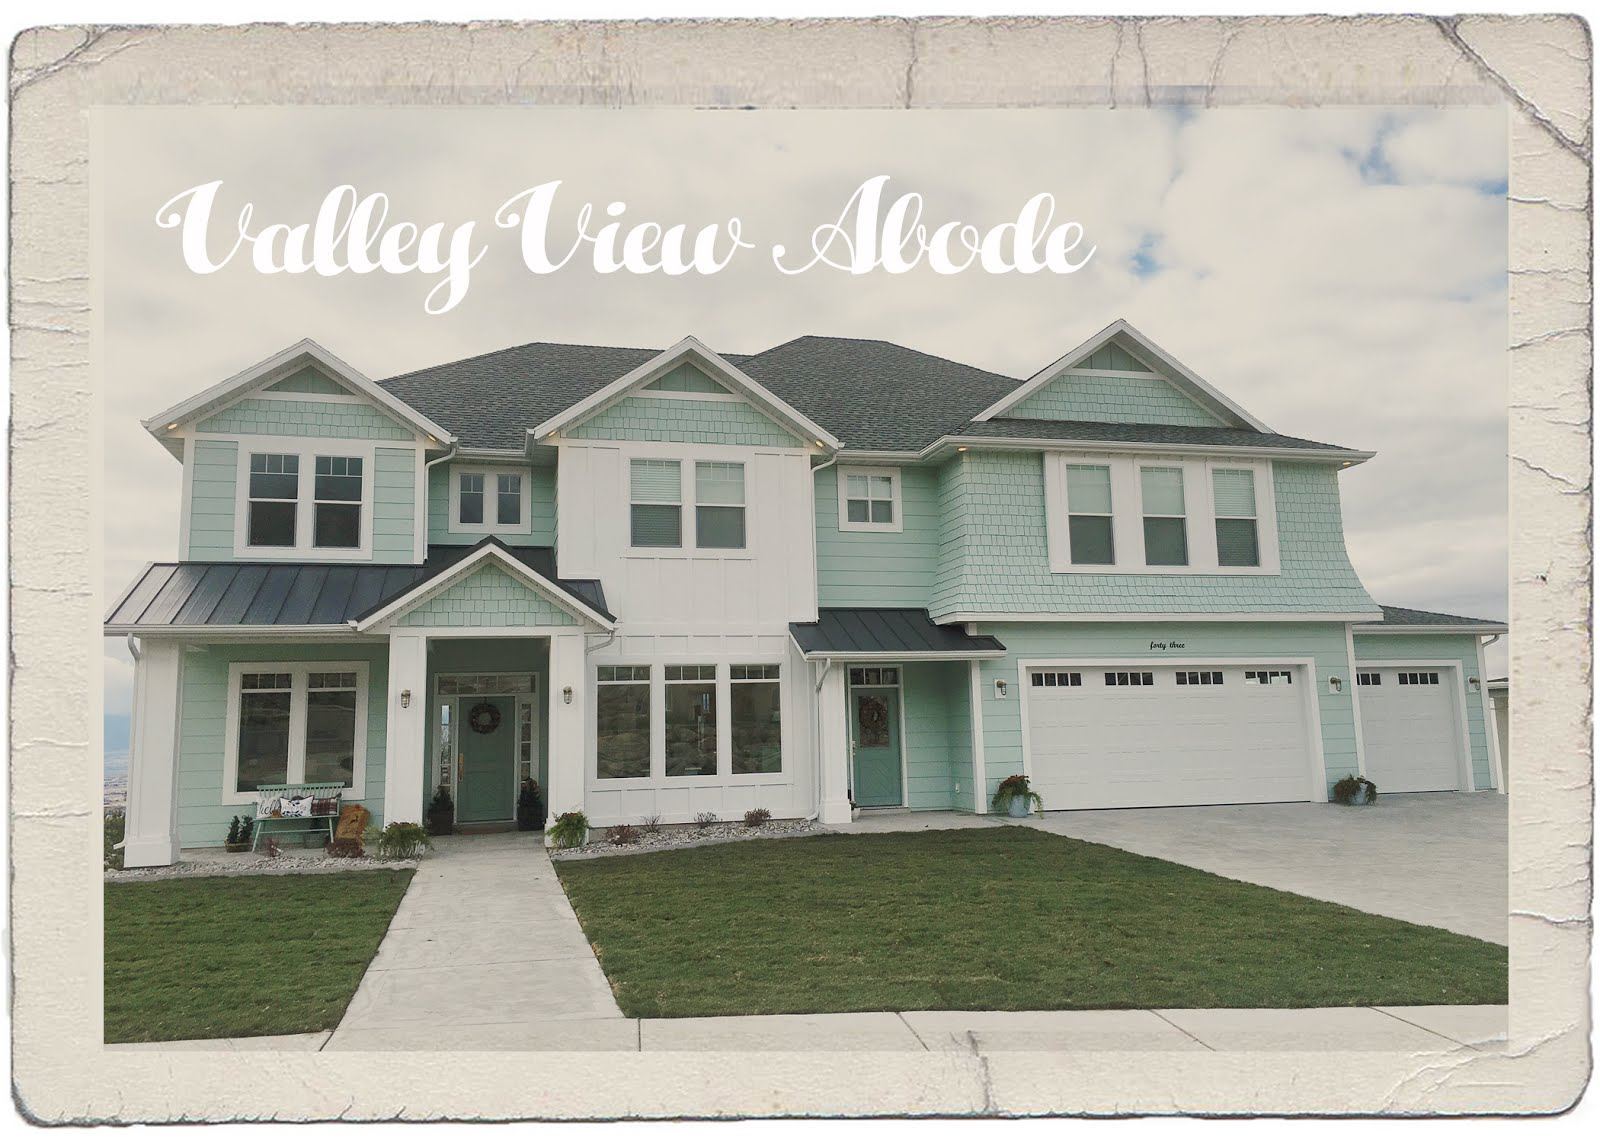 Valley View Abode